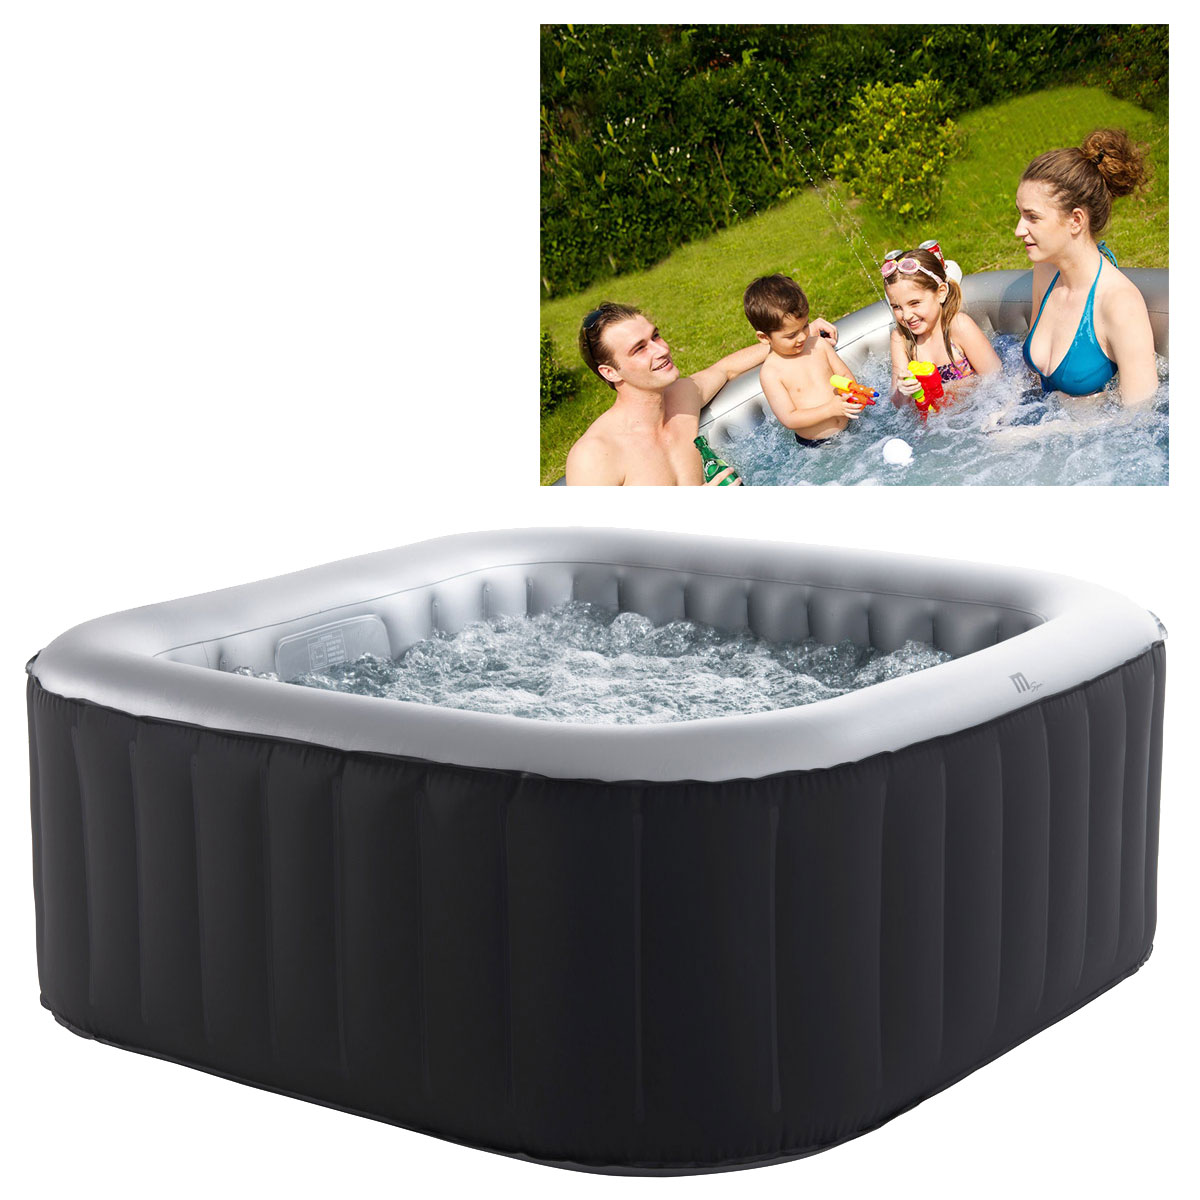 Pool Filterpumpe Funktion Whirlpool In Outdoor Pool Wellness Heizung Massage